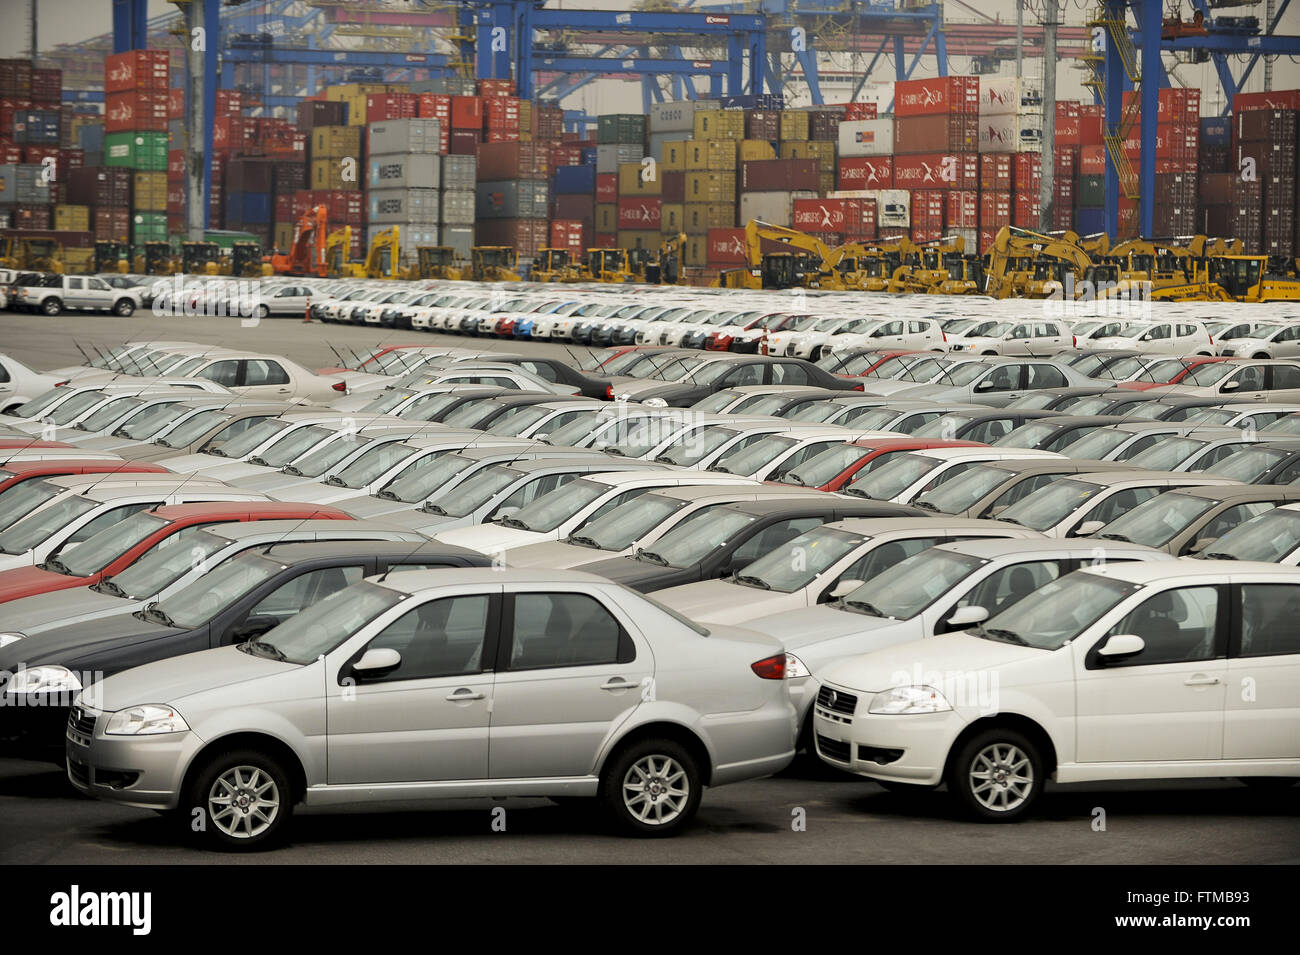 Used Fiat brand that will be exported to Argentina at the Port of Santos - Stock Image